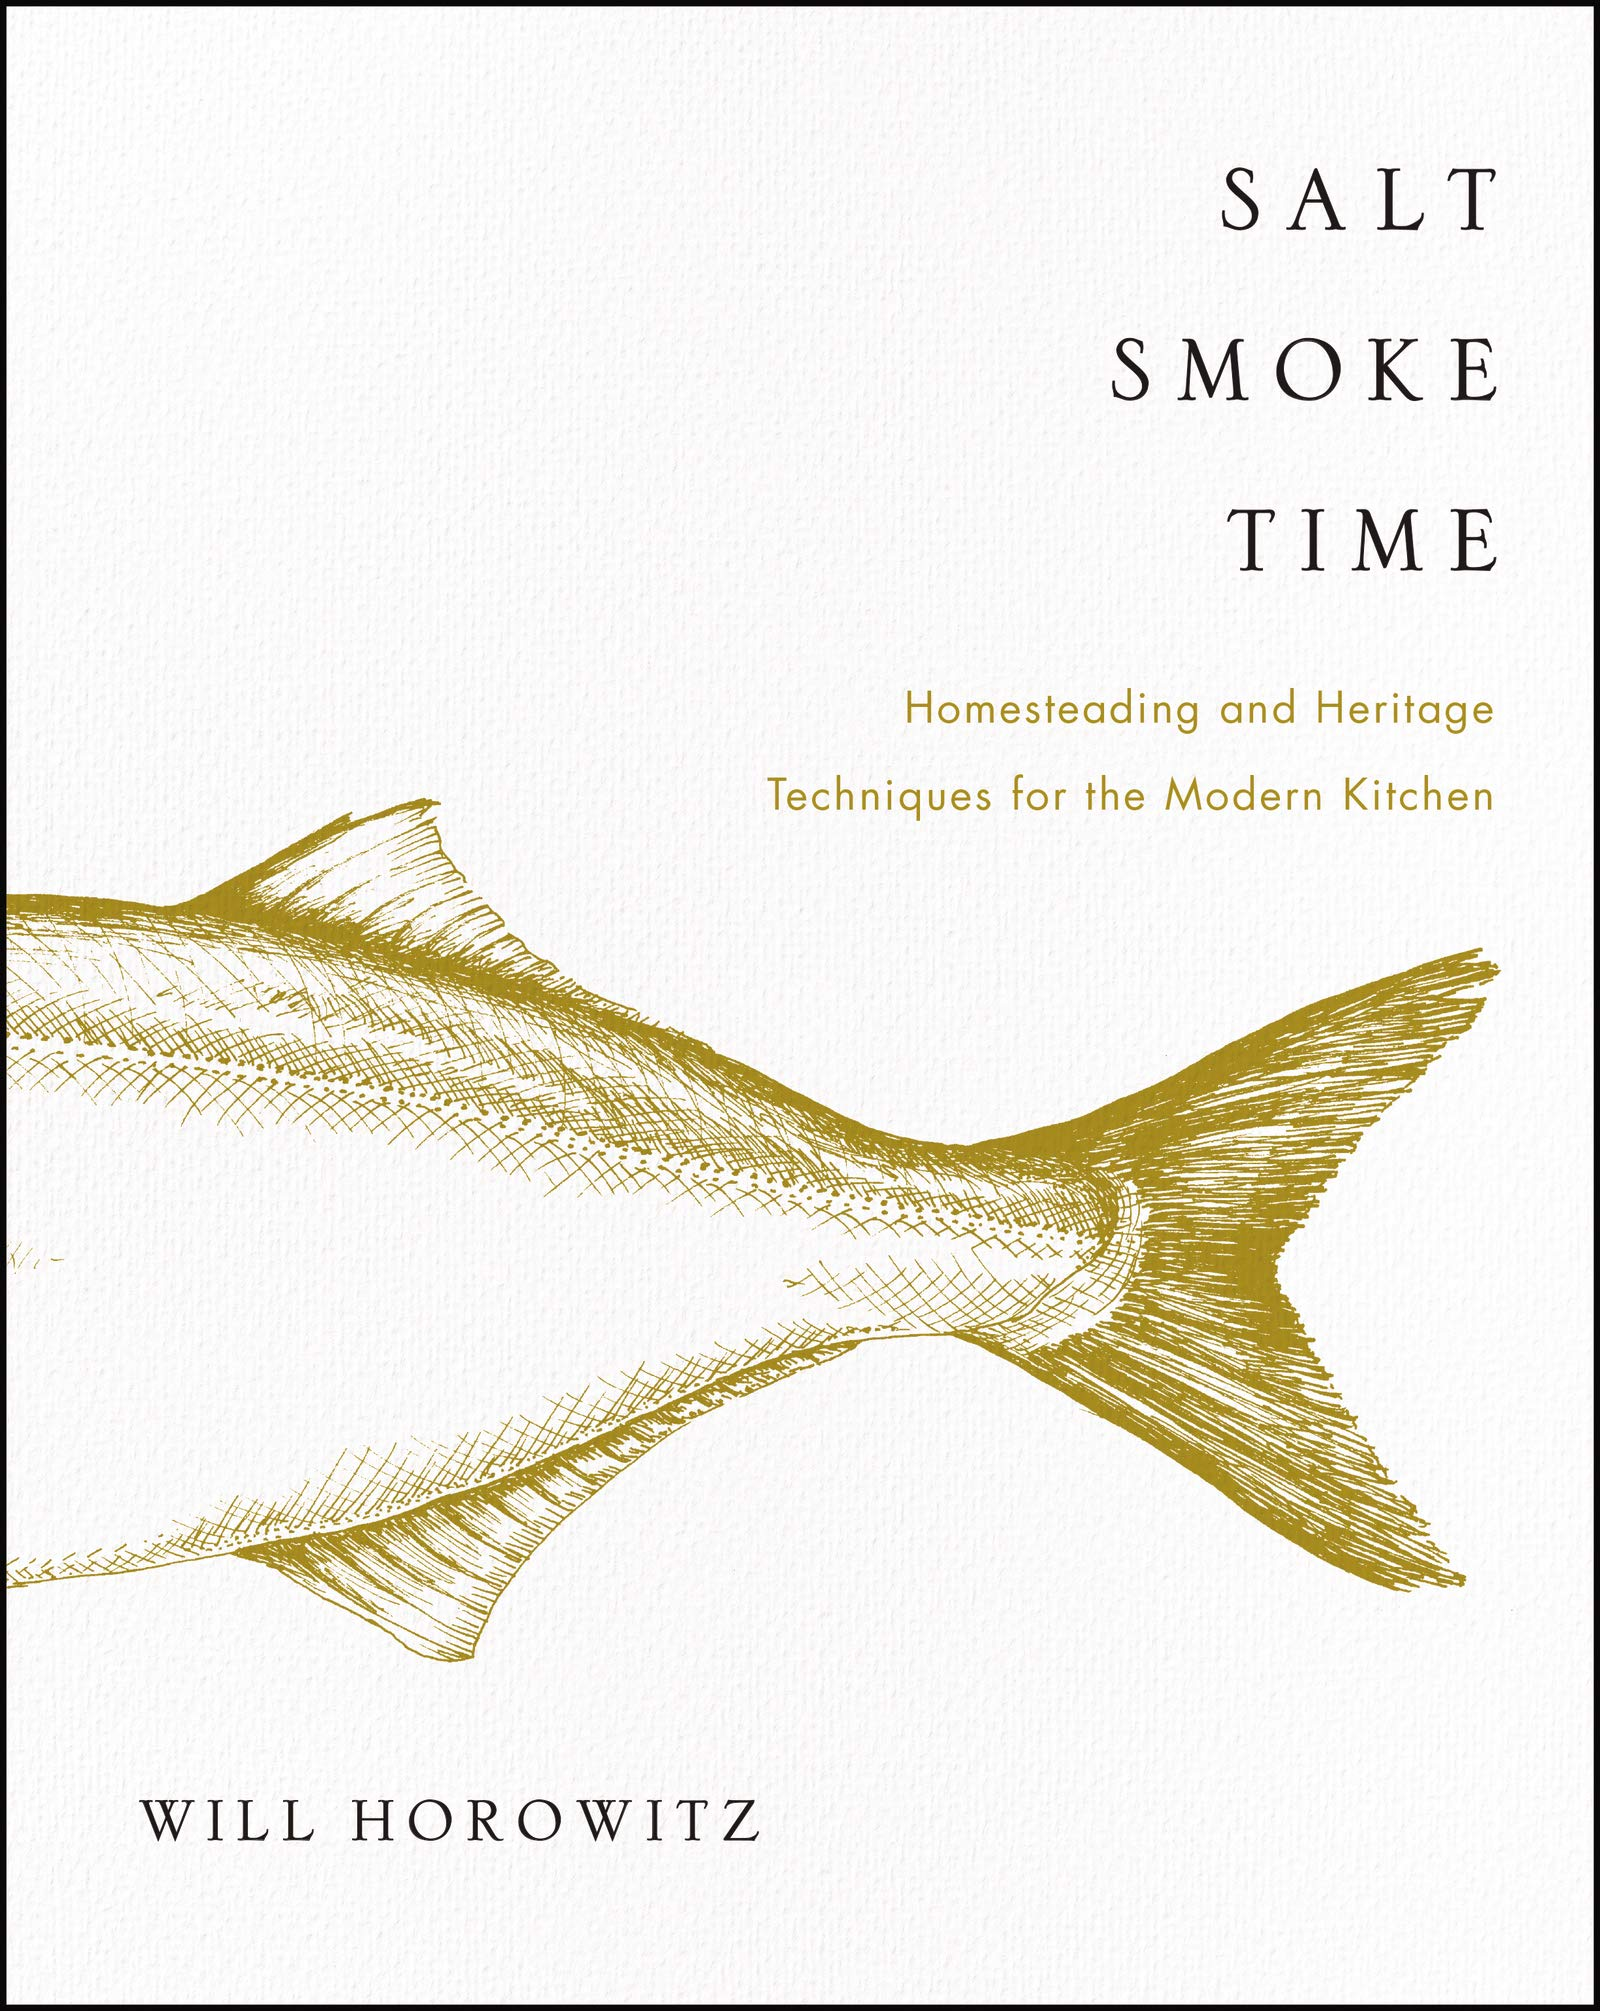 Download Salt Smoke Time: Homesteading And Heritage Techniques For The Modern Kitchen 